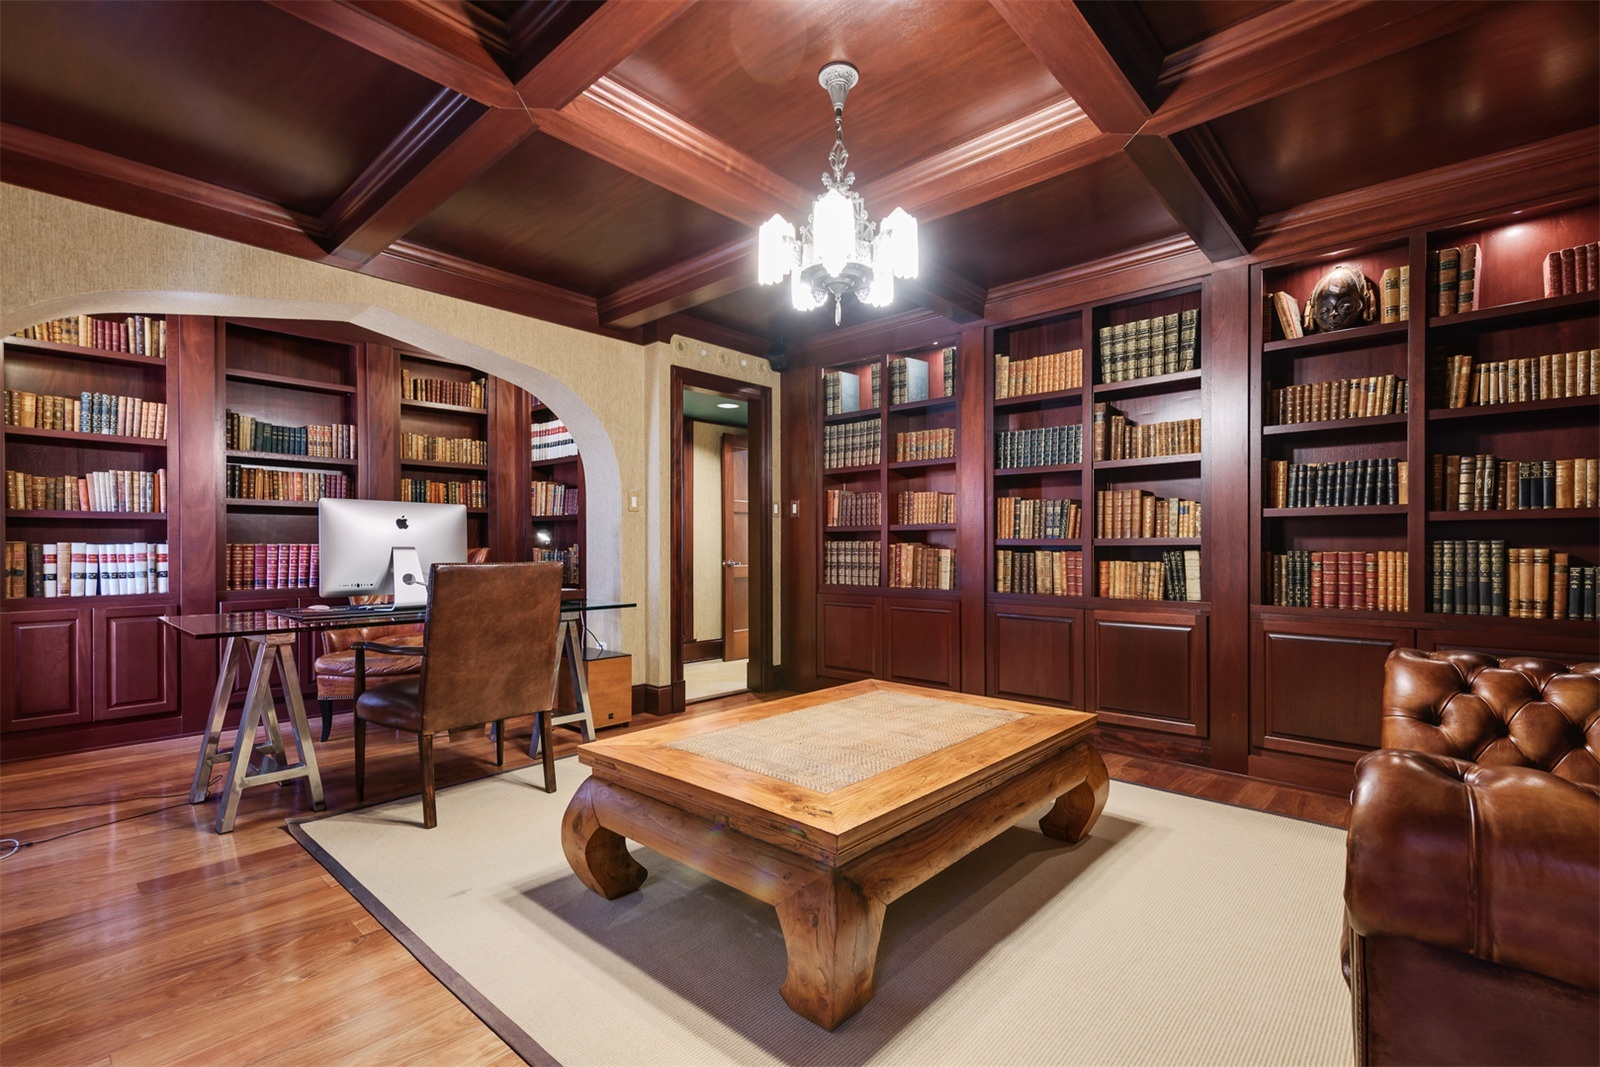 The third bedroom of this elegant residence near Michigan Avenue has been transformed into a delightful private library, complete with coffered ceilings, wood-paneled walls, and floor-to-ceiling mahogany bookshelves.